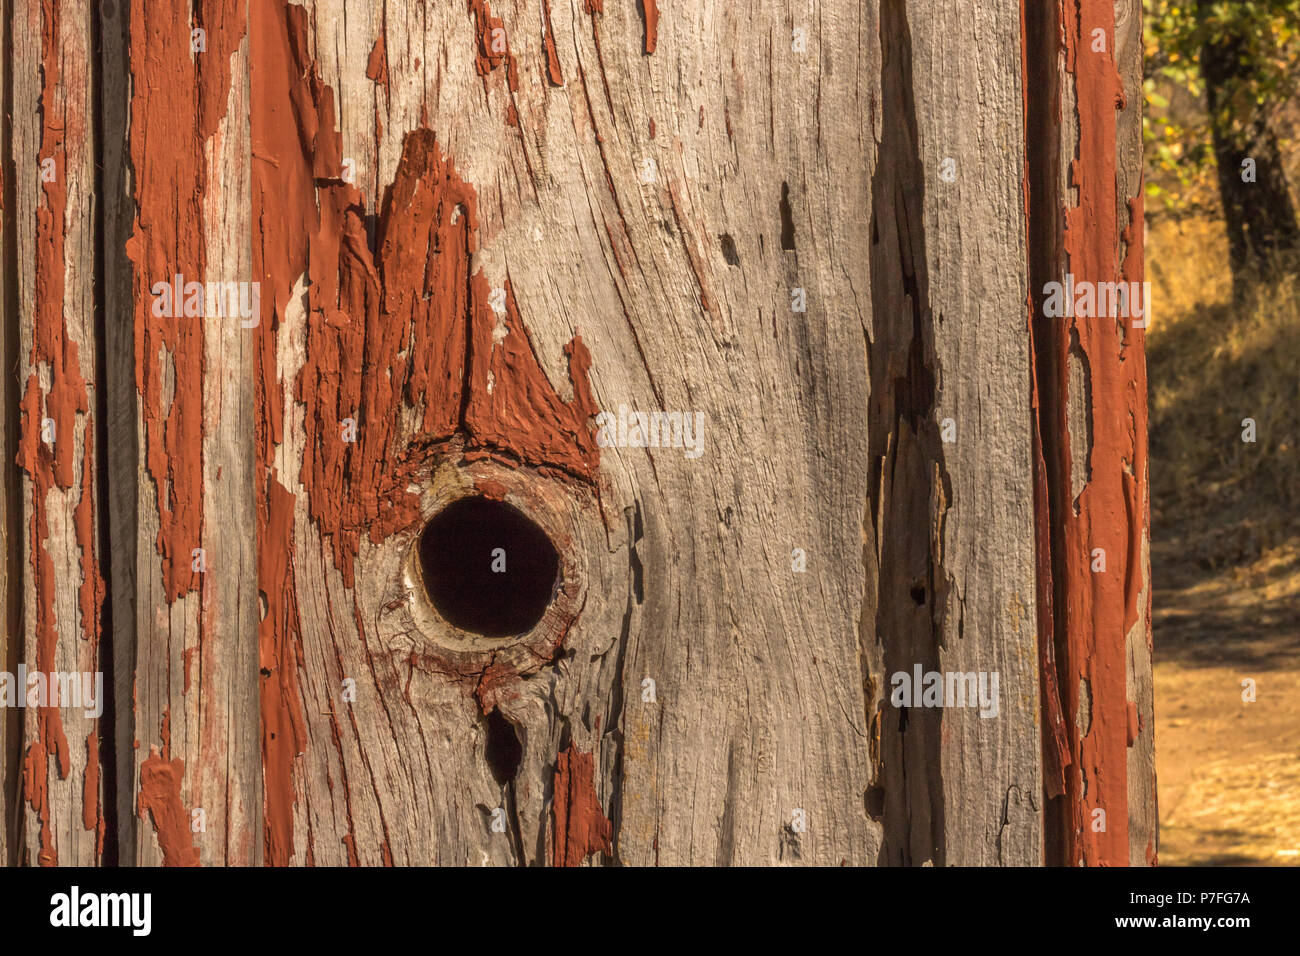 Detail of old, peeling red paint on small, wood out building background - Stock Image